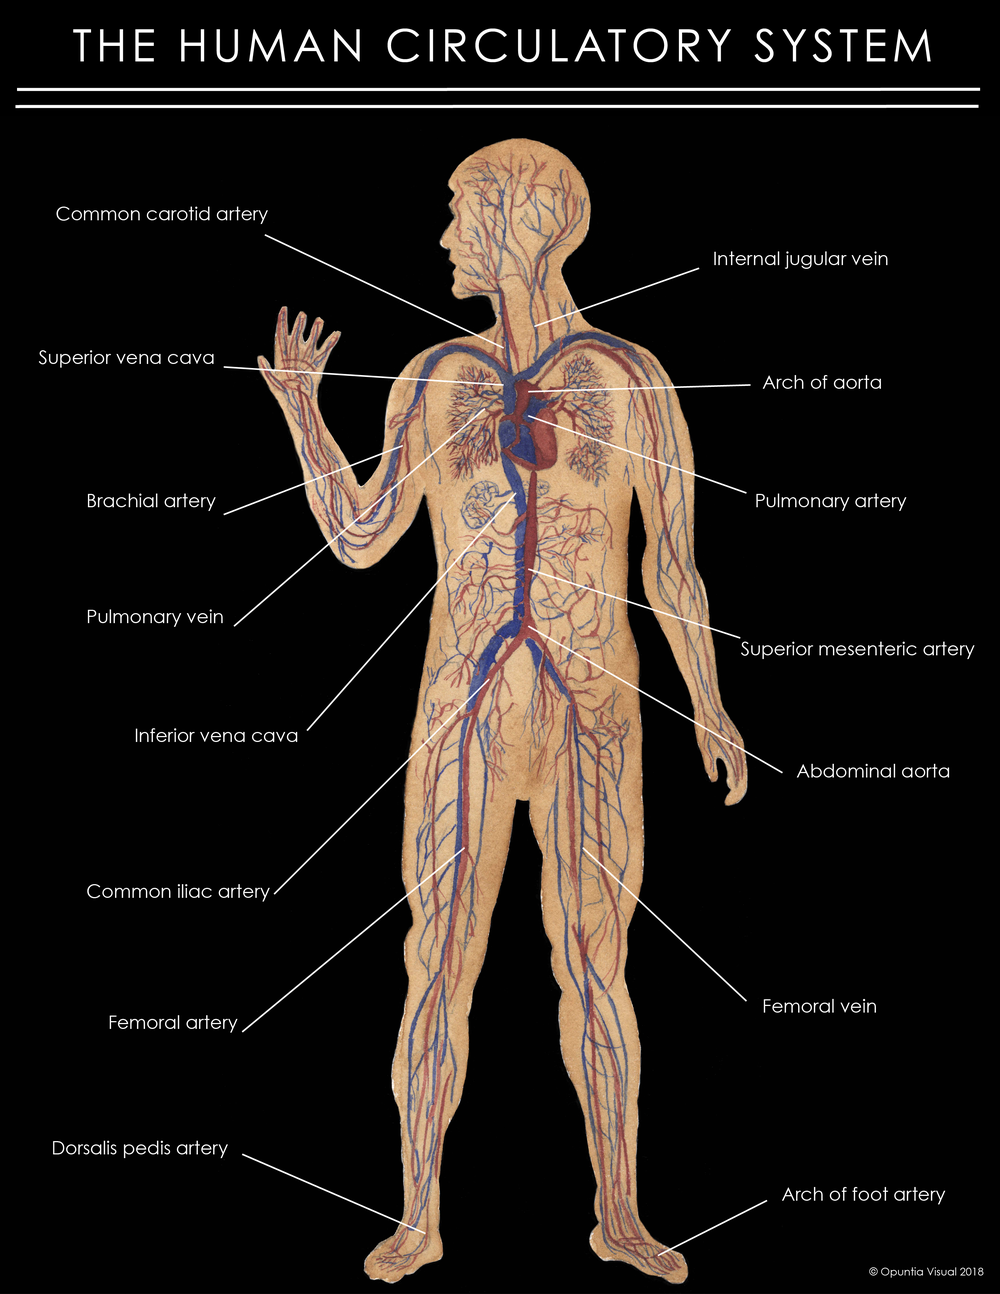 The Human Circulatory System Opuntia Visual